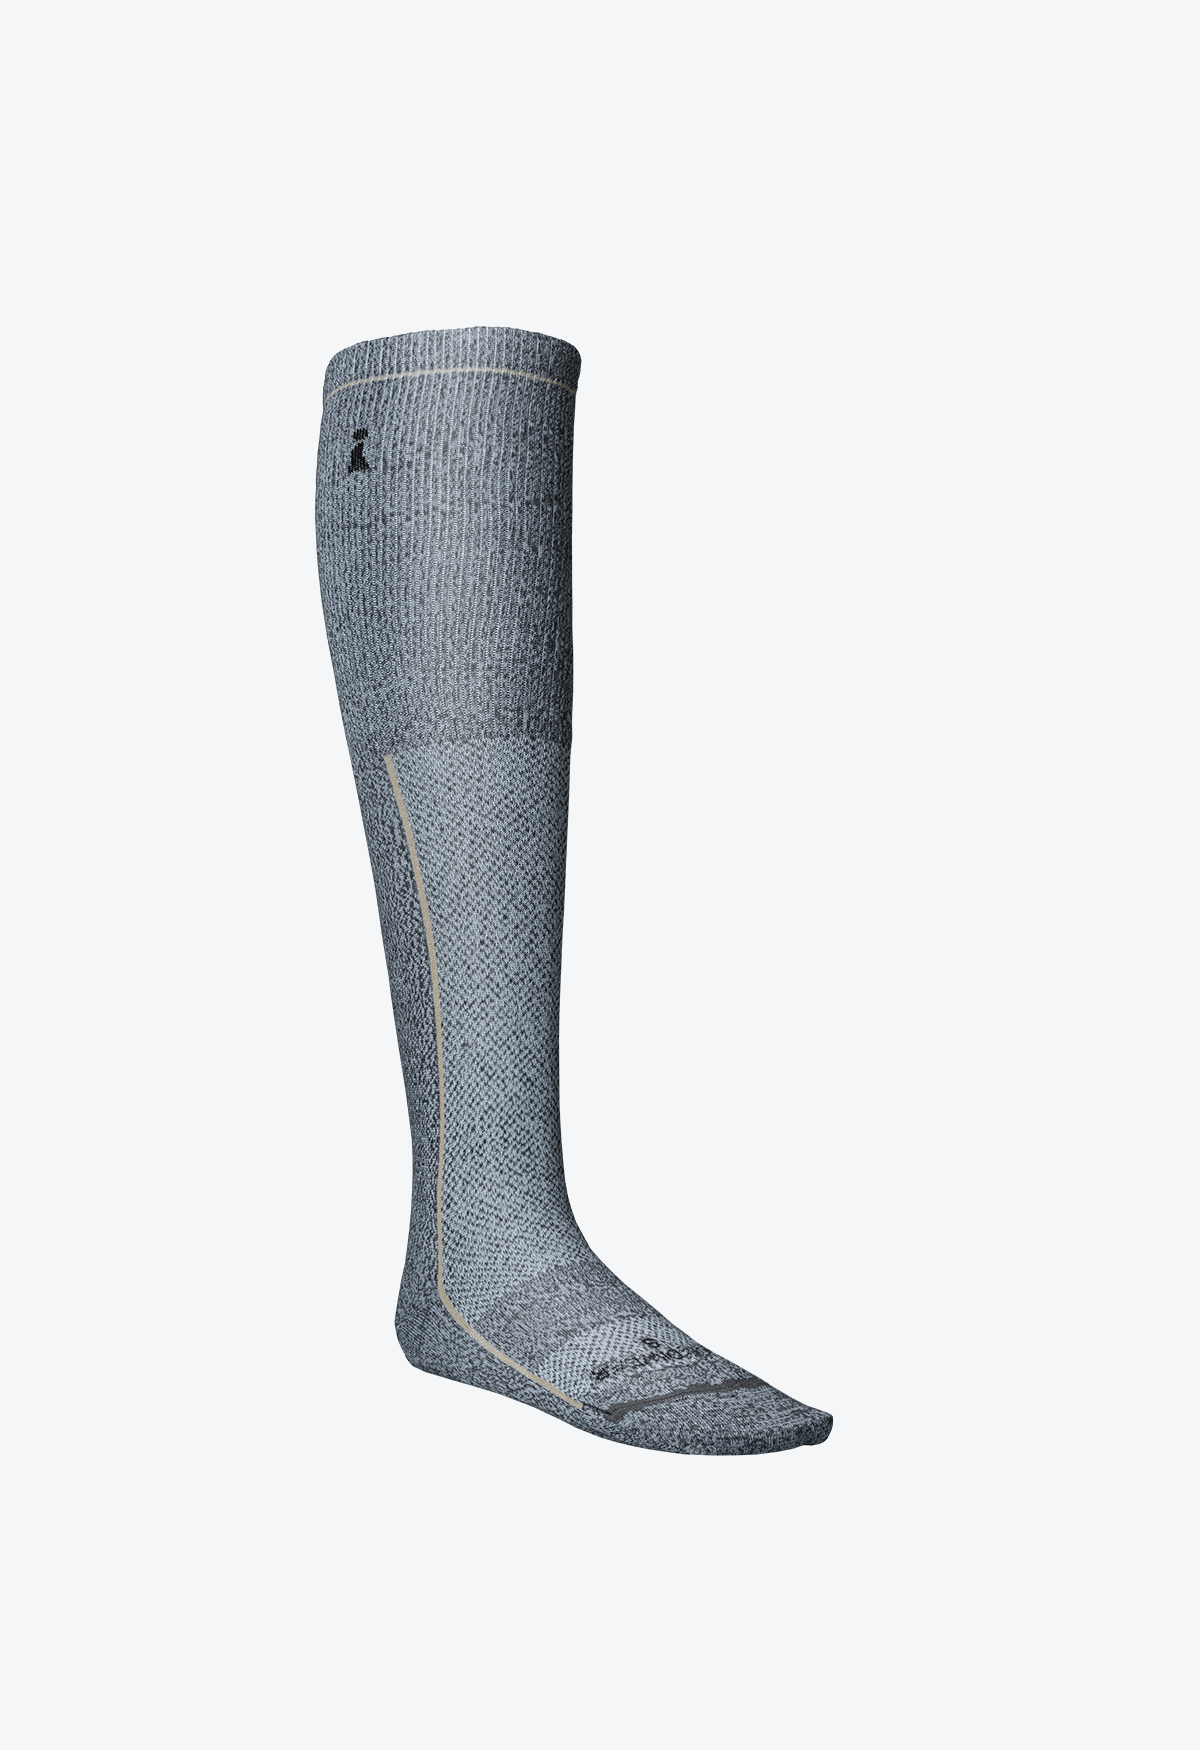 Incrediwear Wool Socks